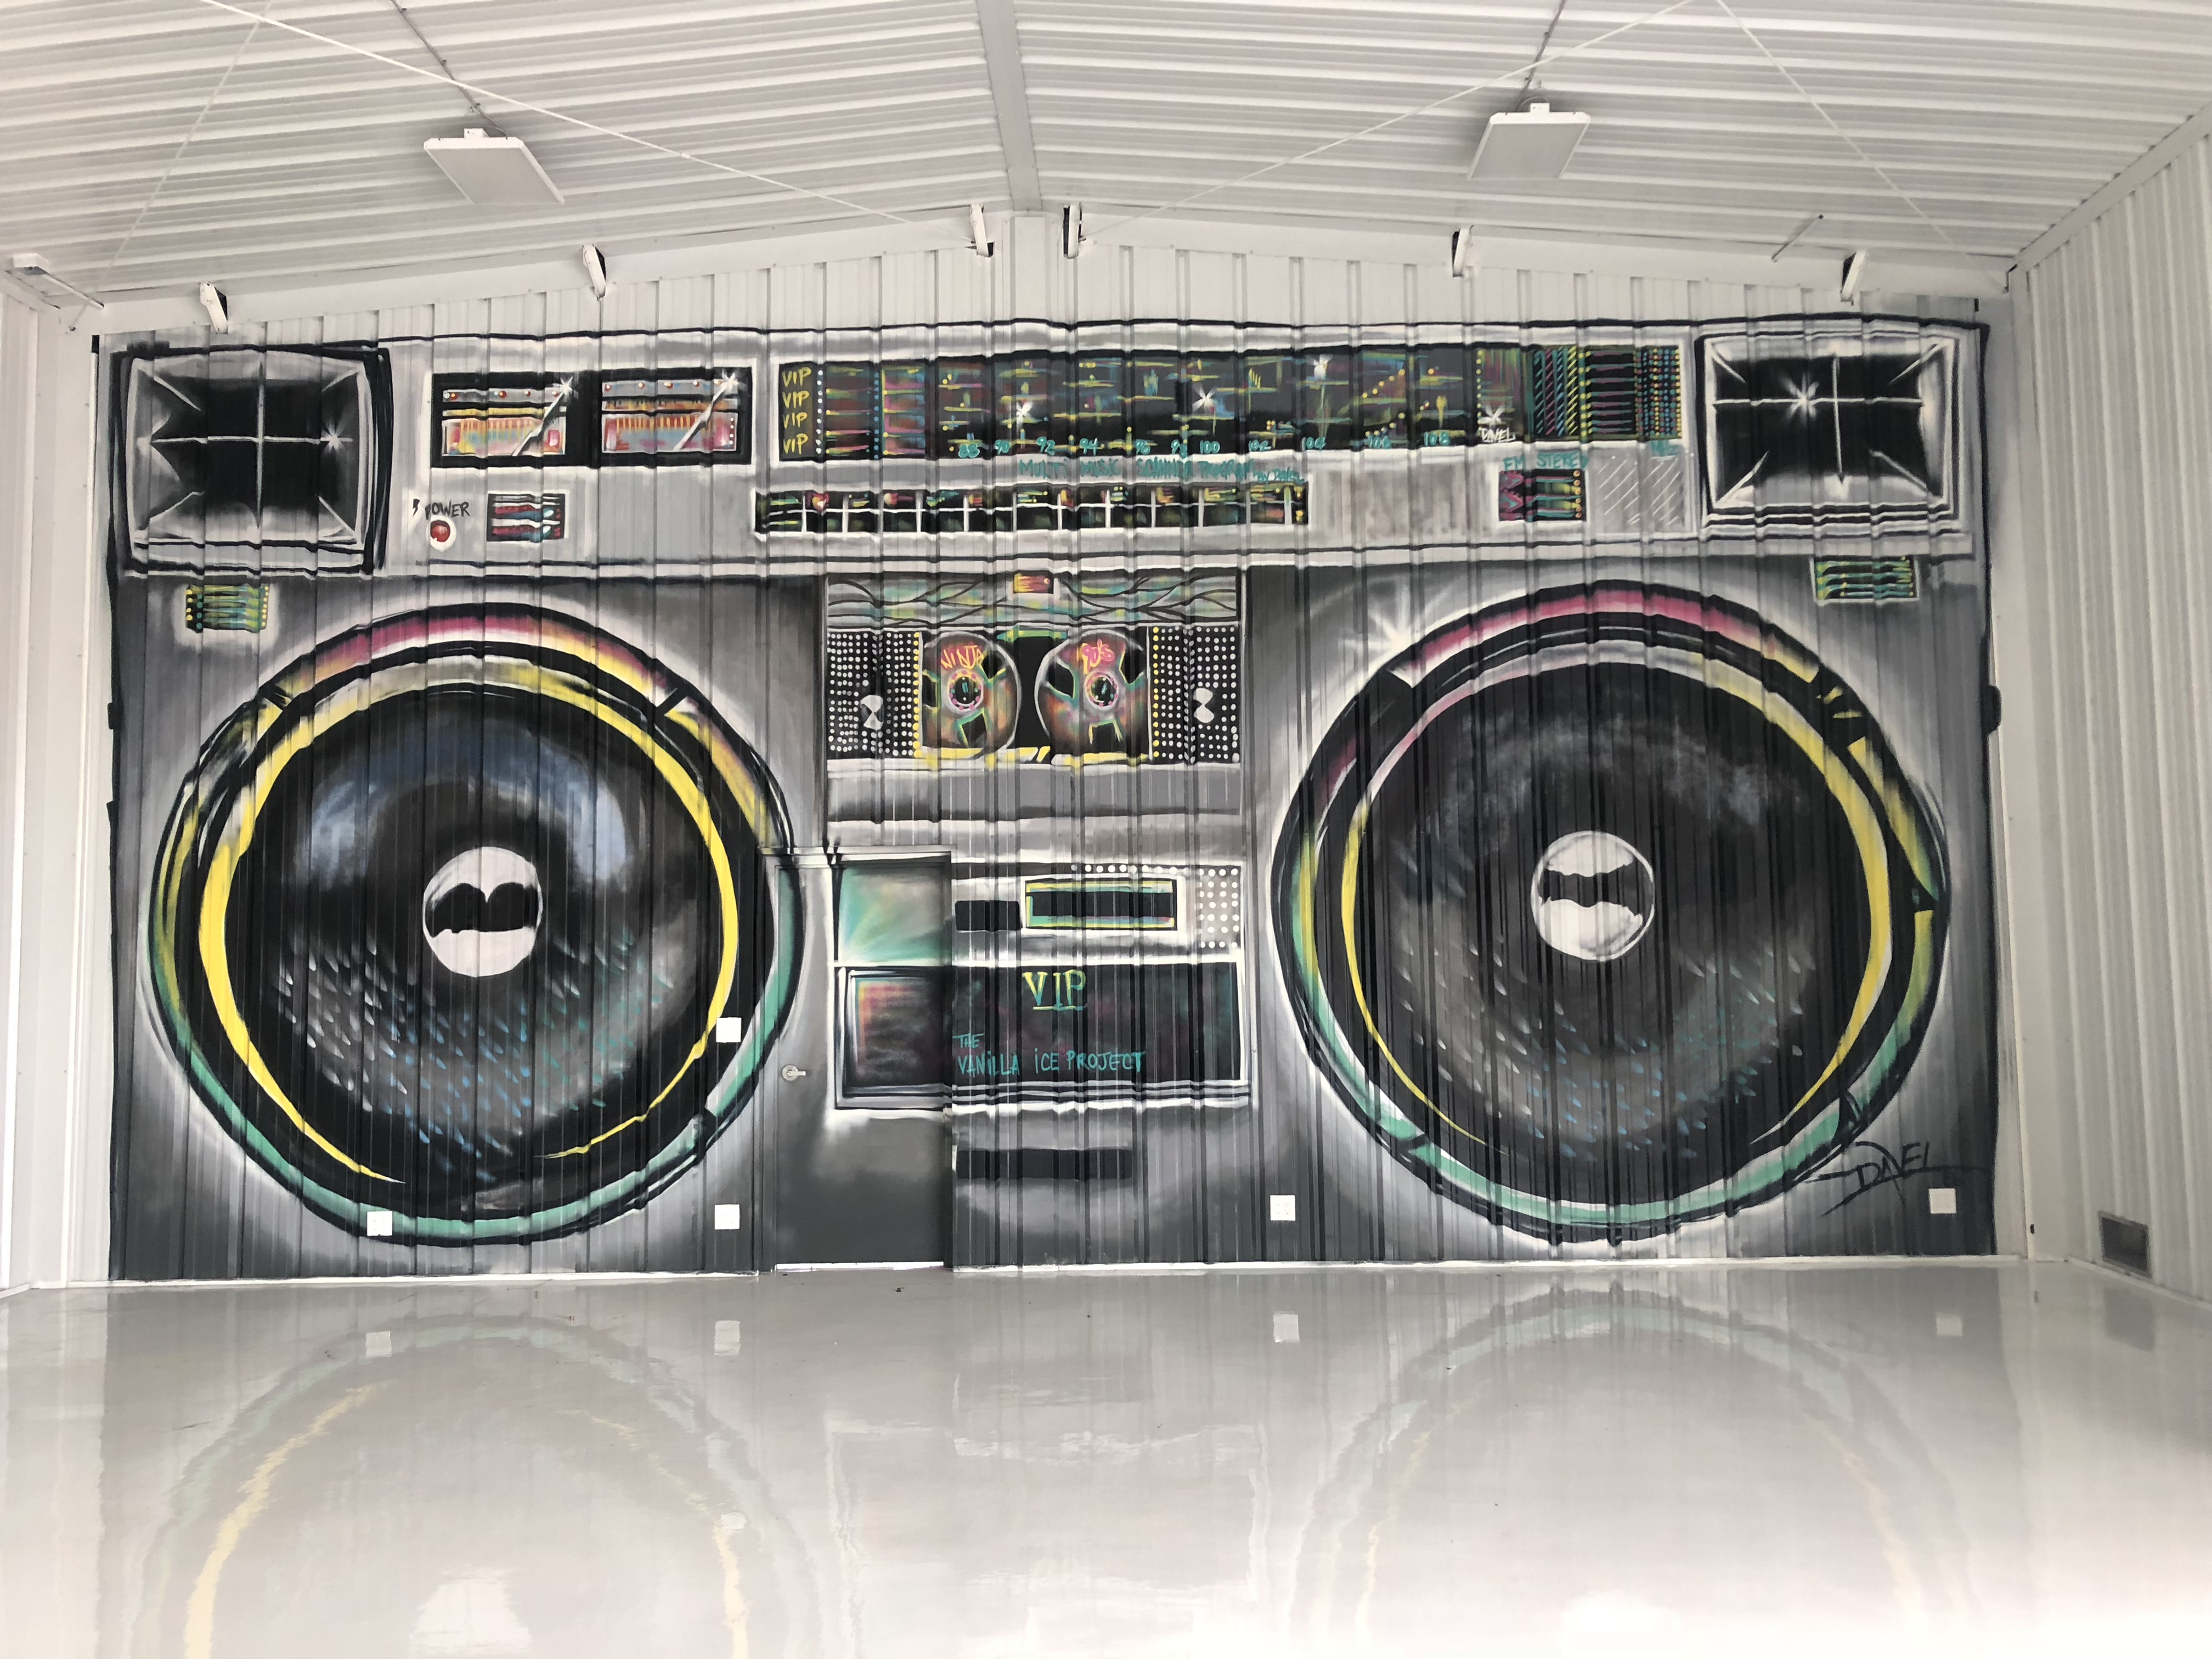 Boombox Mural Painting